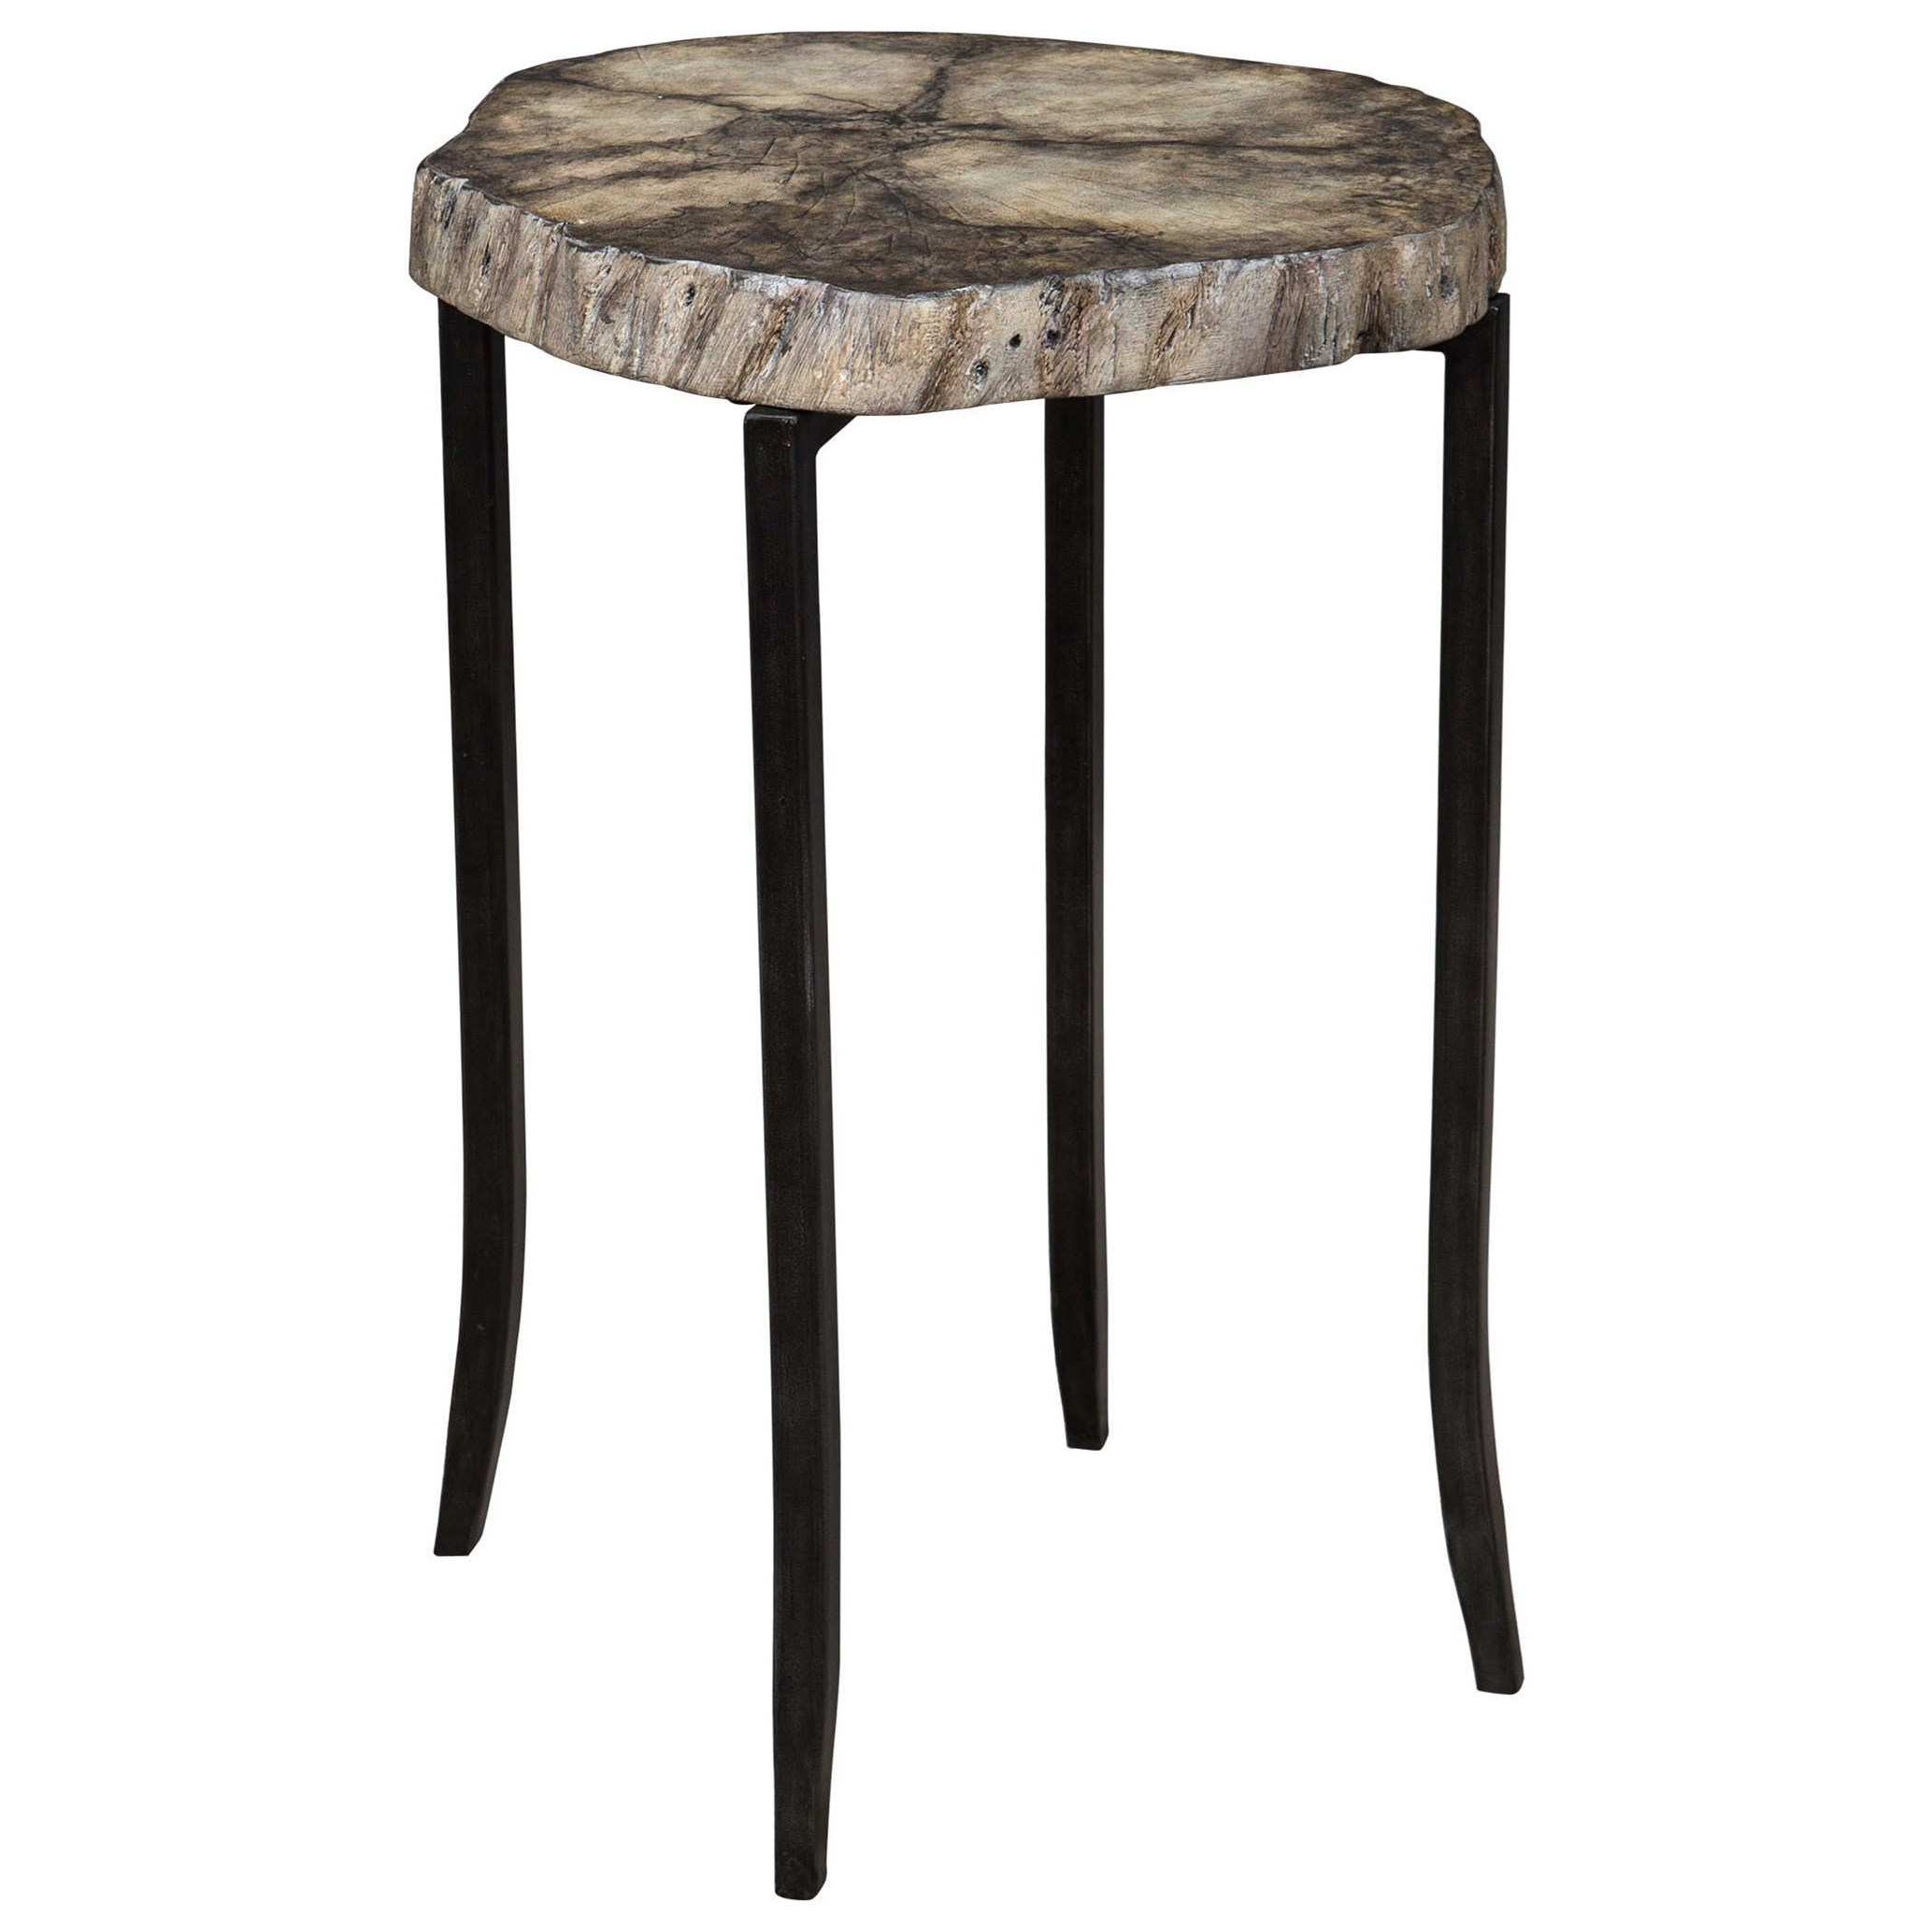 Accent Furniture - Occasional Tables Stiles Rustic Accent Table by Uttermost at Mueller Furniture